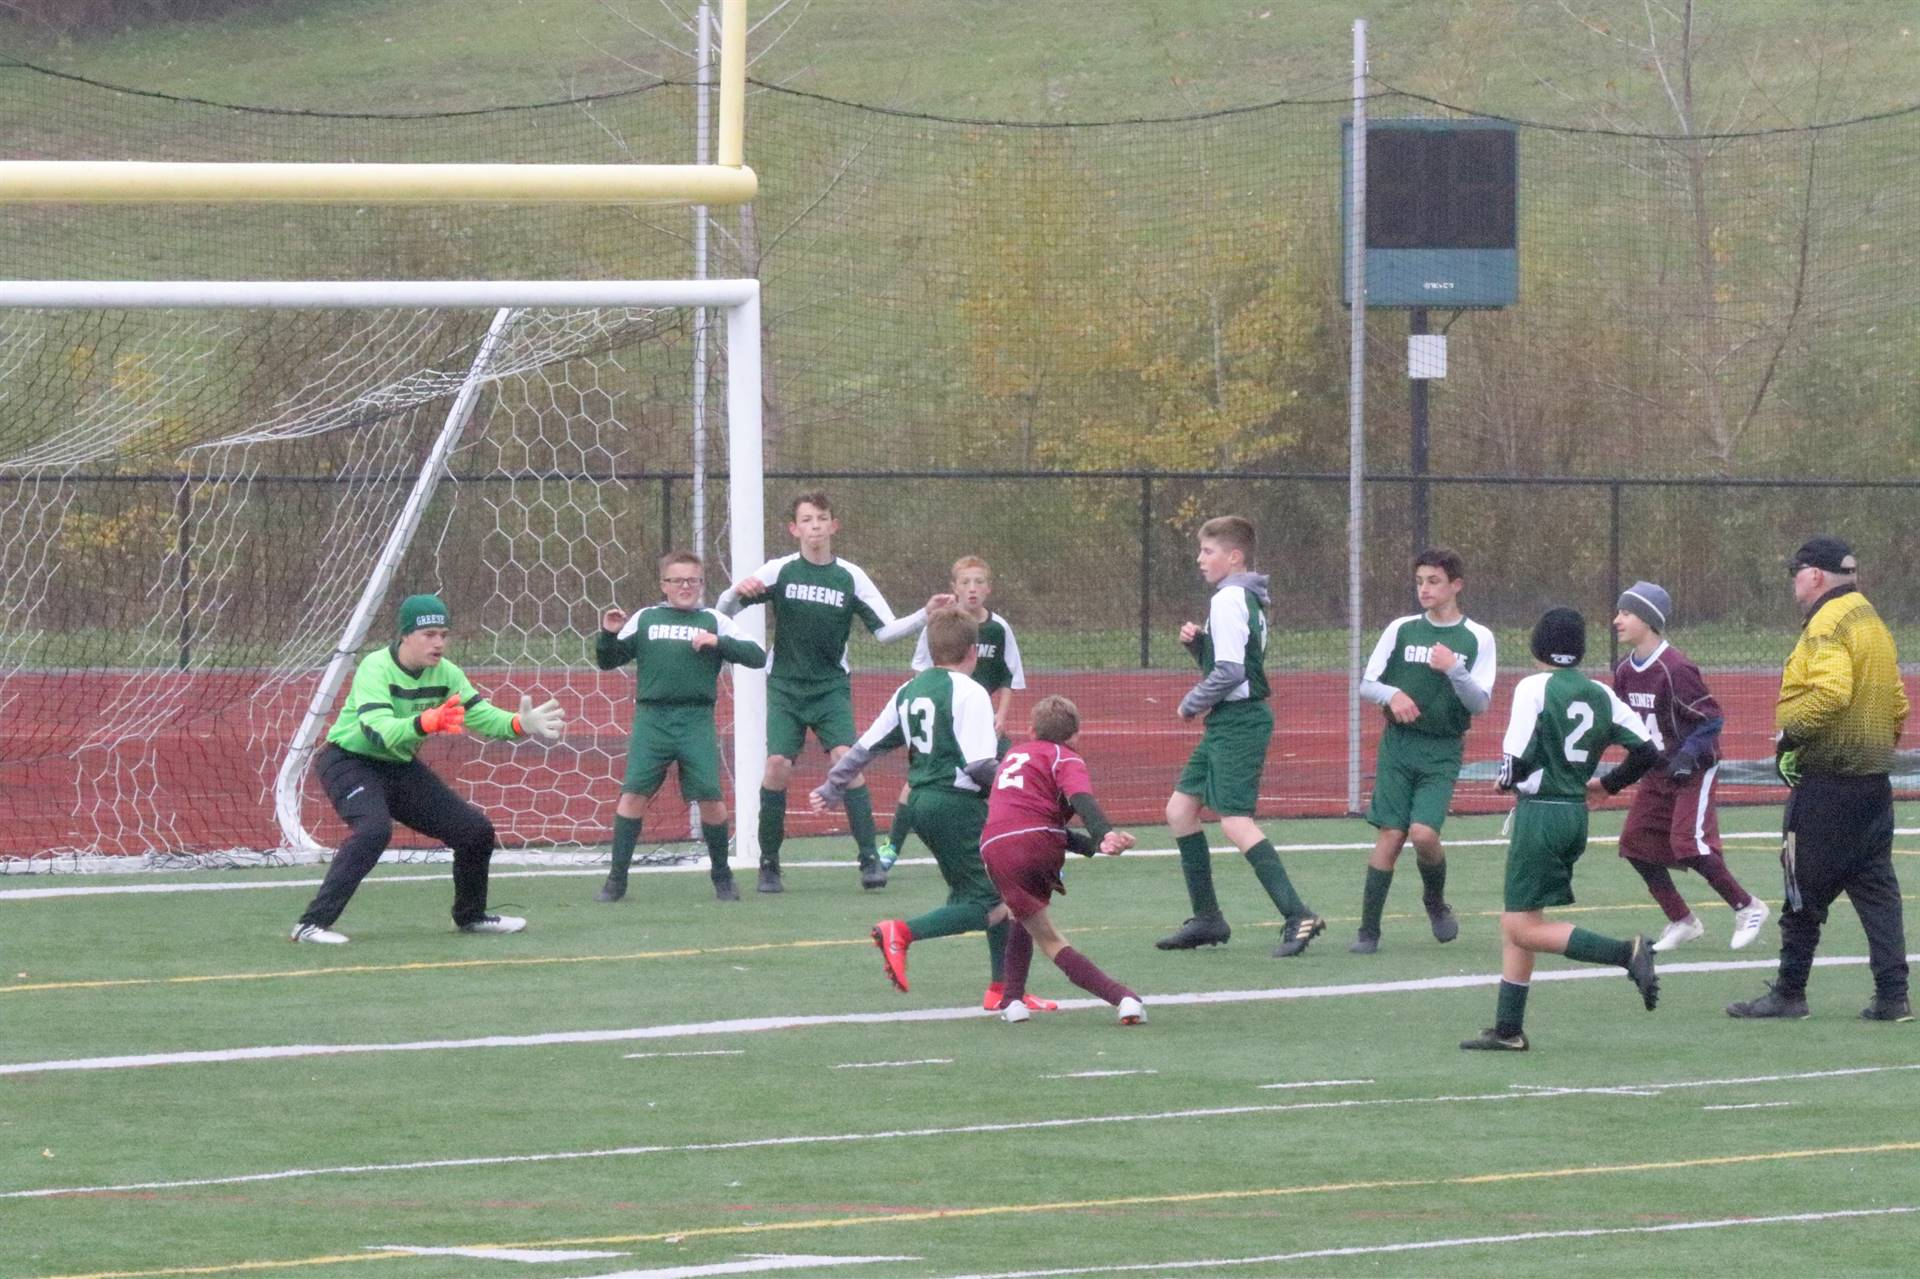 photo of 2019 boys modified soccer game